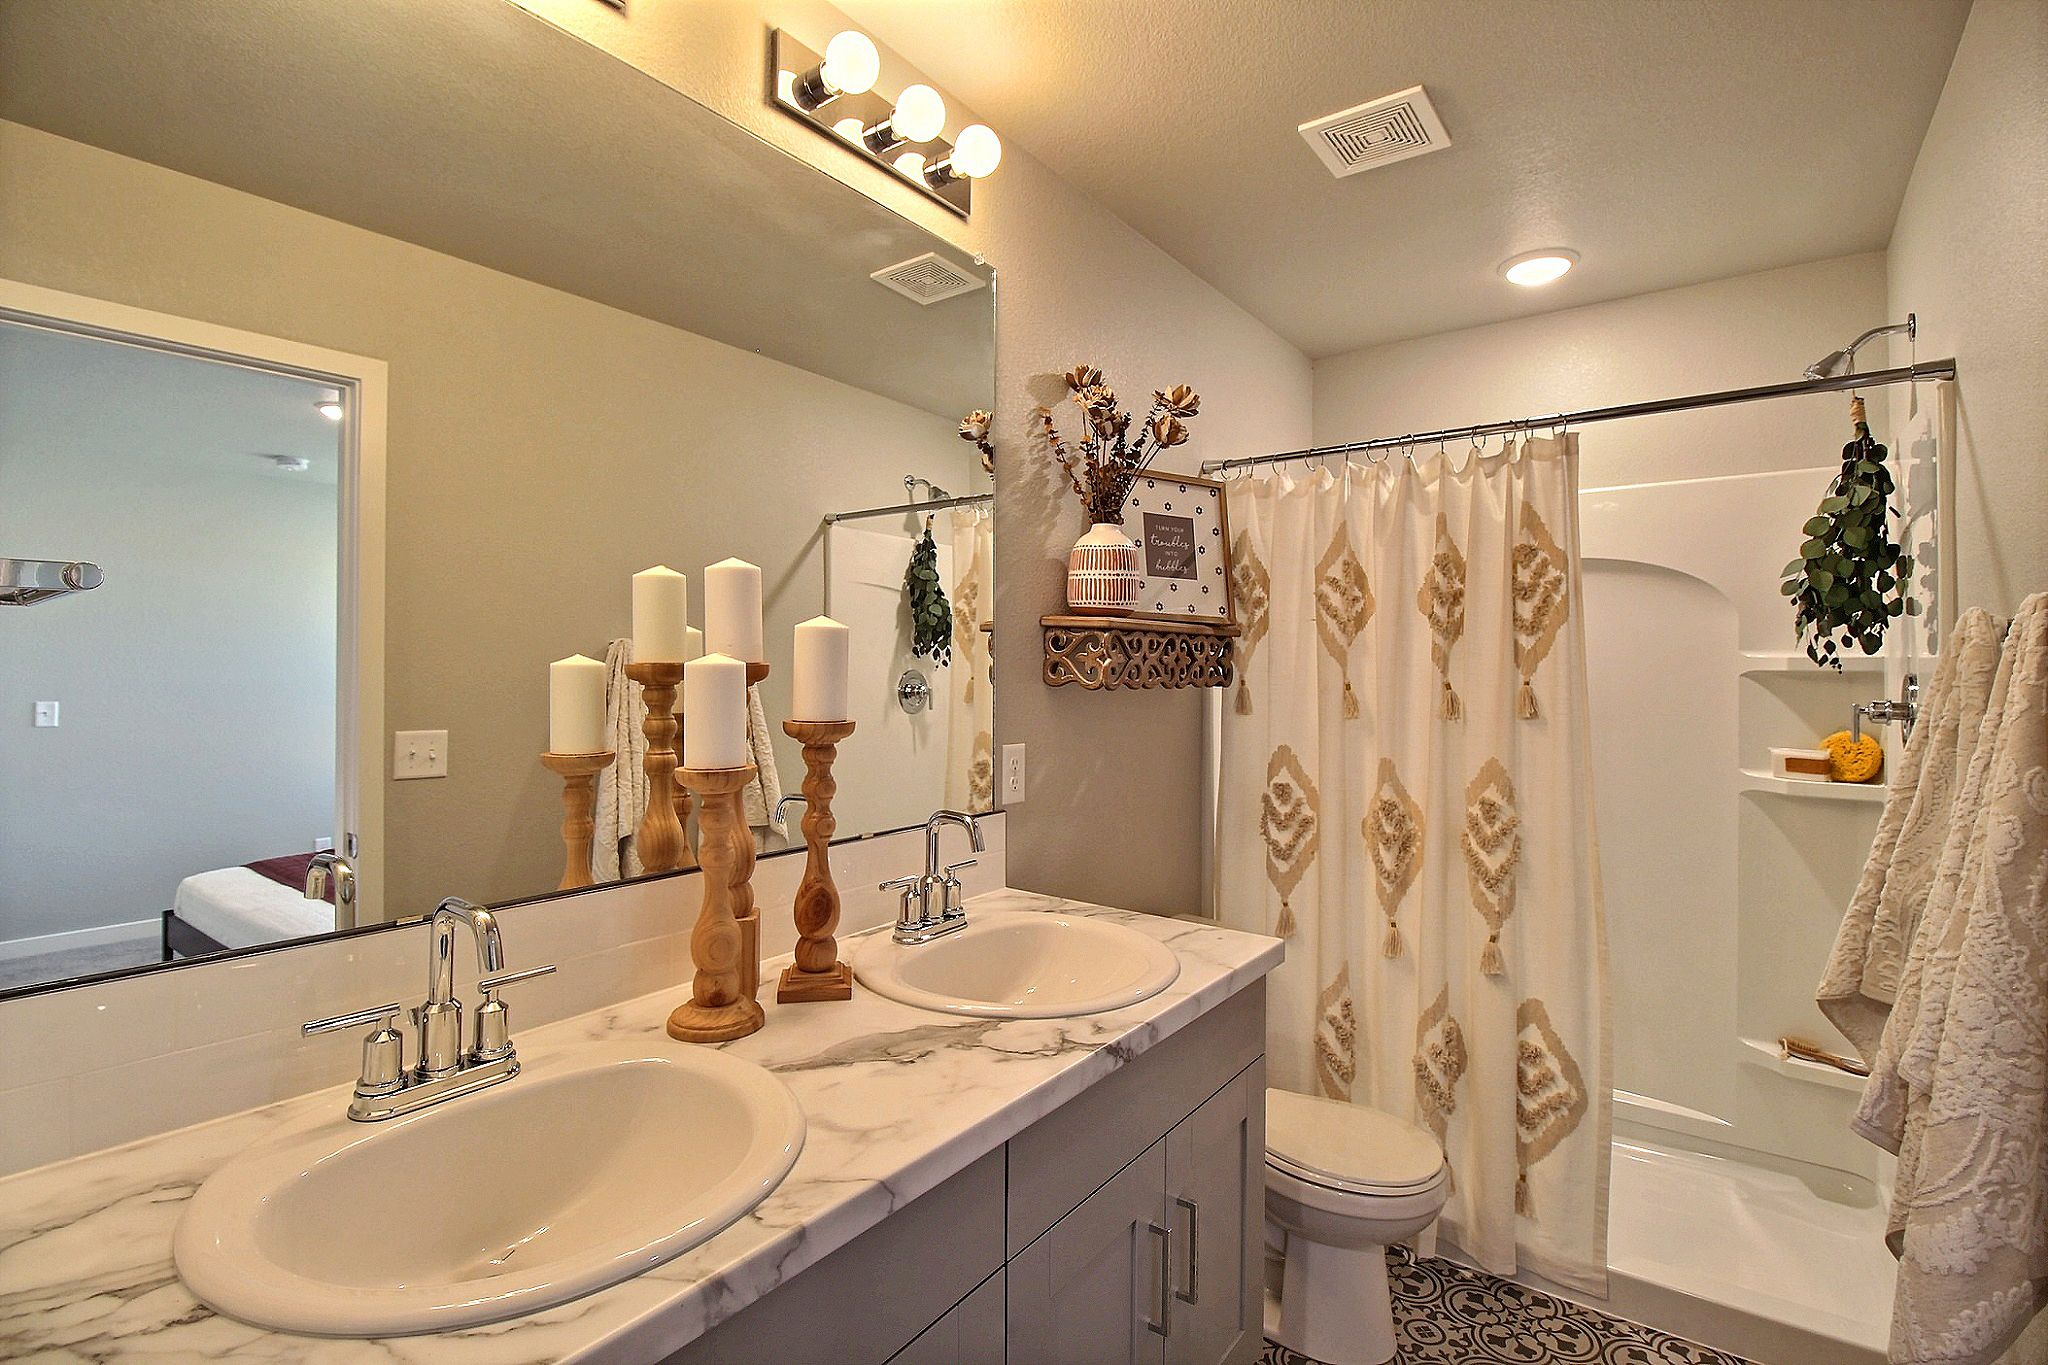 Bathroom featured in the Weston By Baessler Homes in Greeley, CO